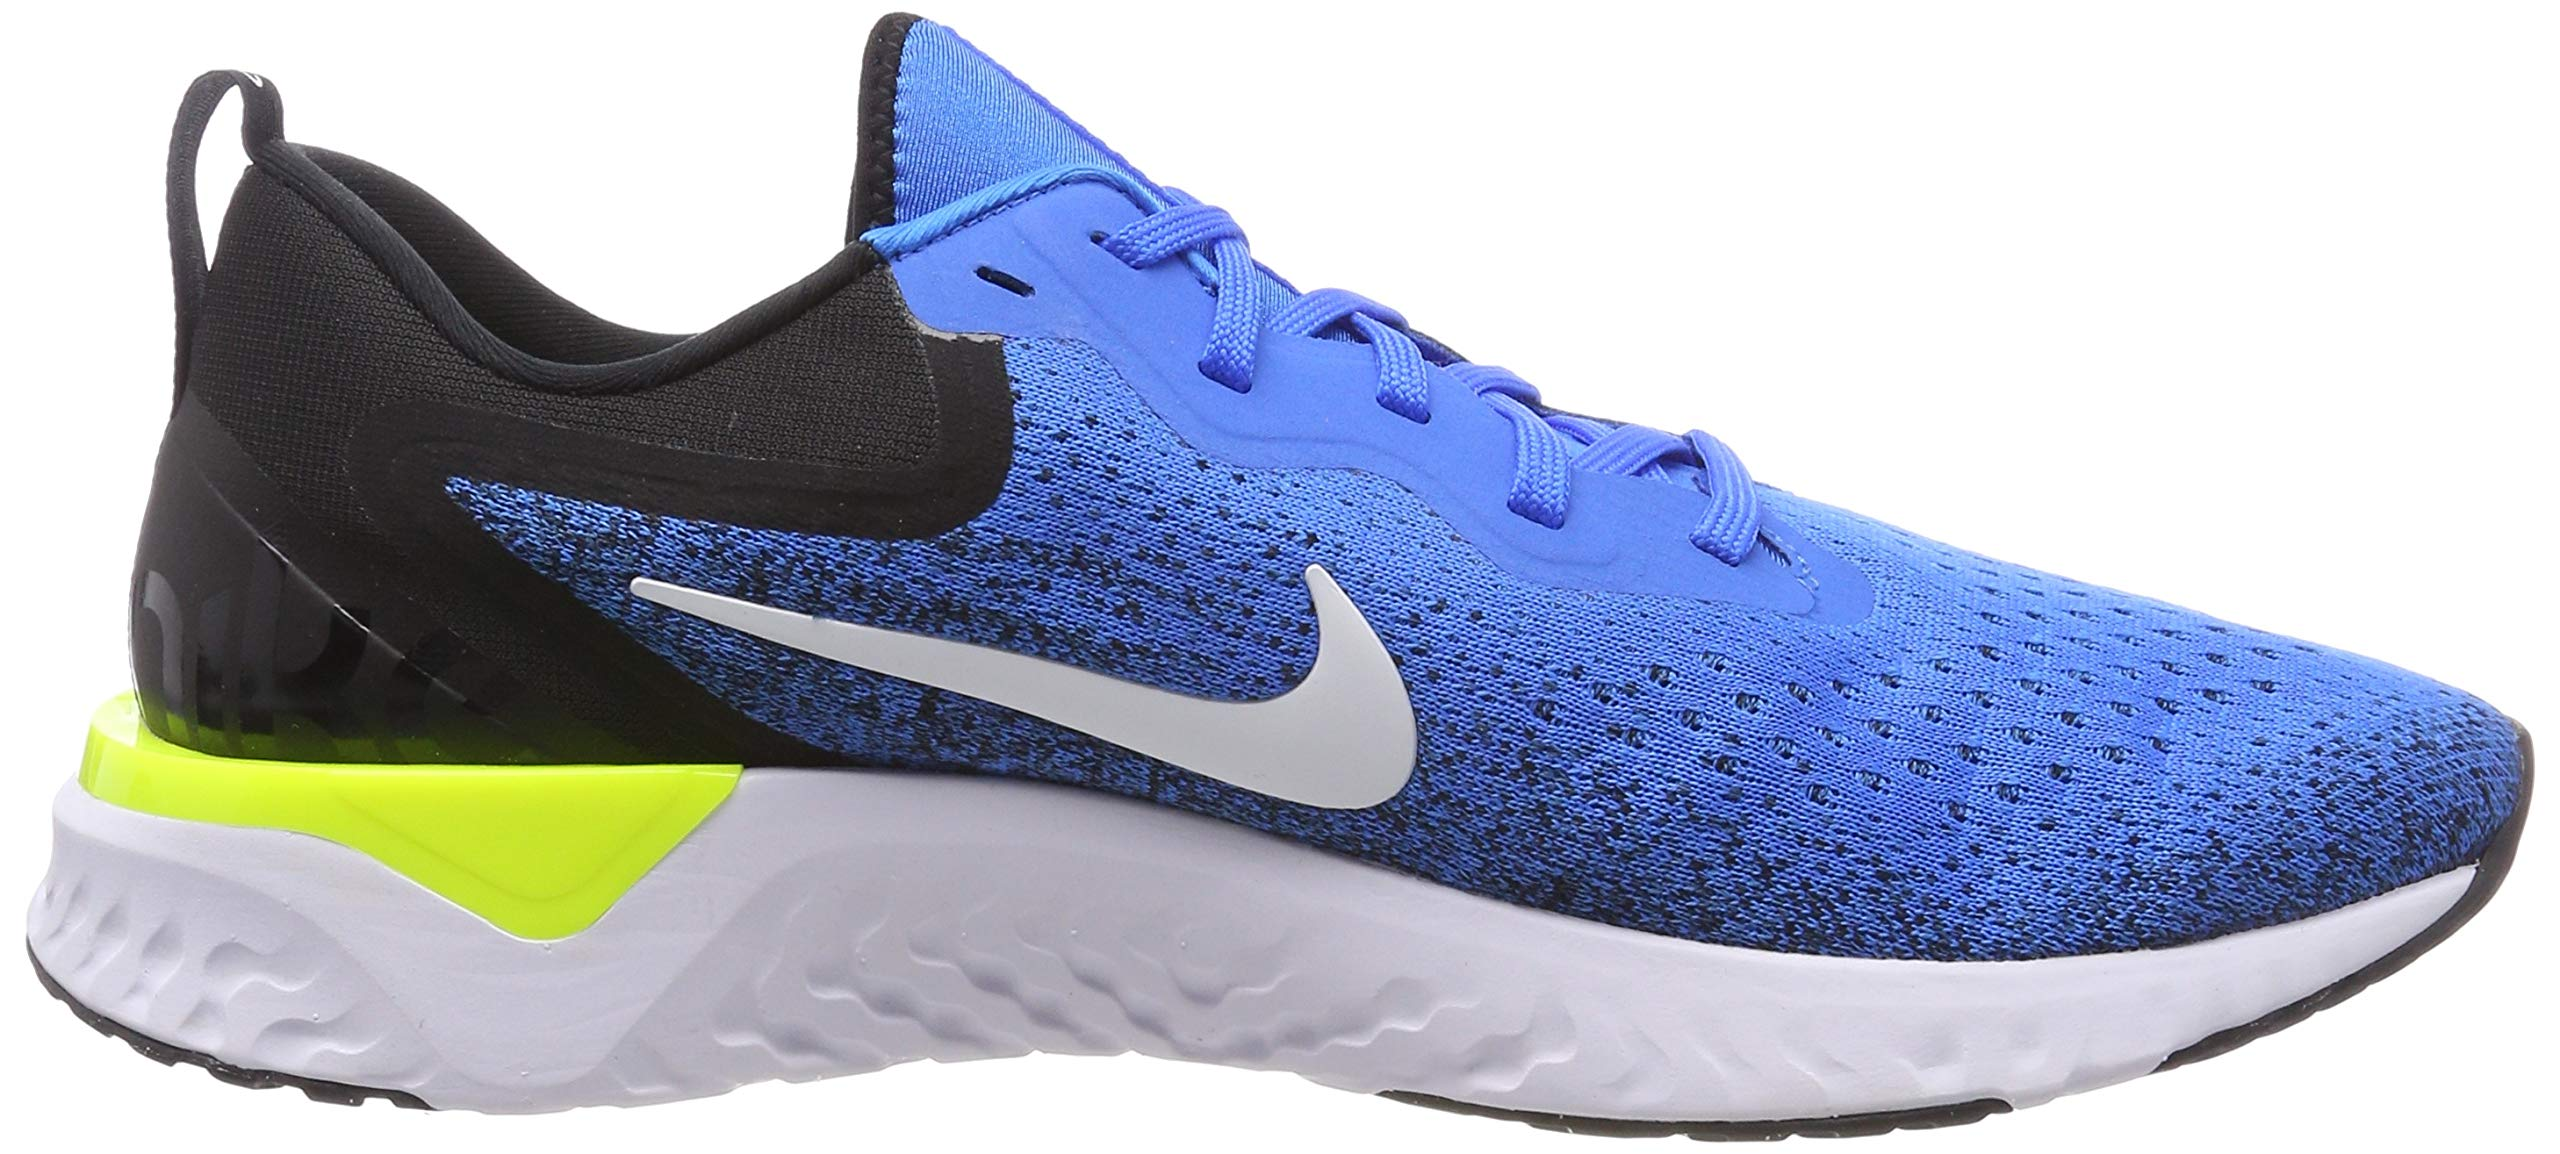 Nike Odyssey React Men's Running Shoe Green Abyss/Volt-Blue Force-White 7.5 by Nike (Image #6)